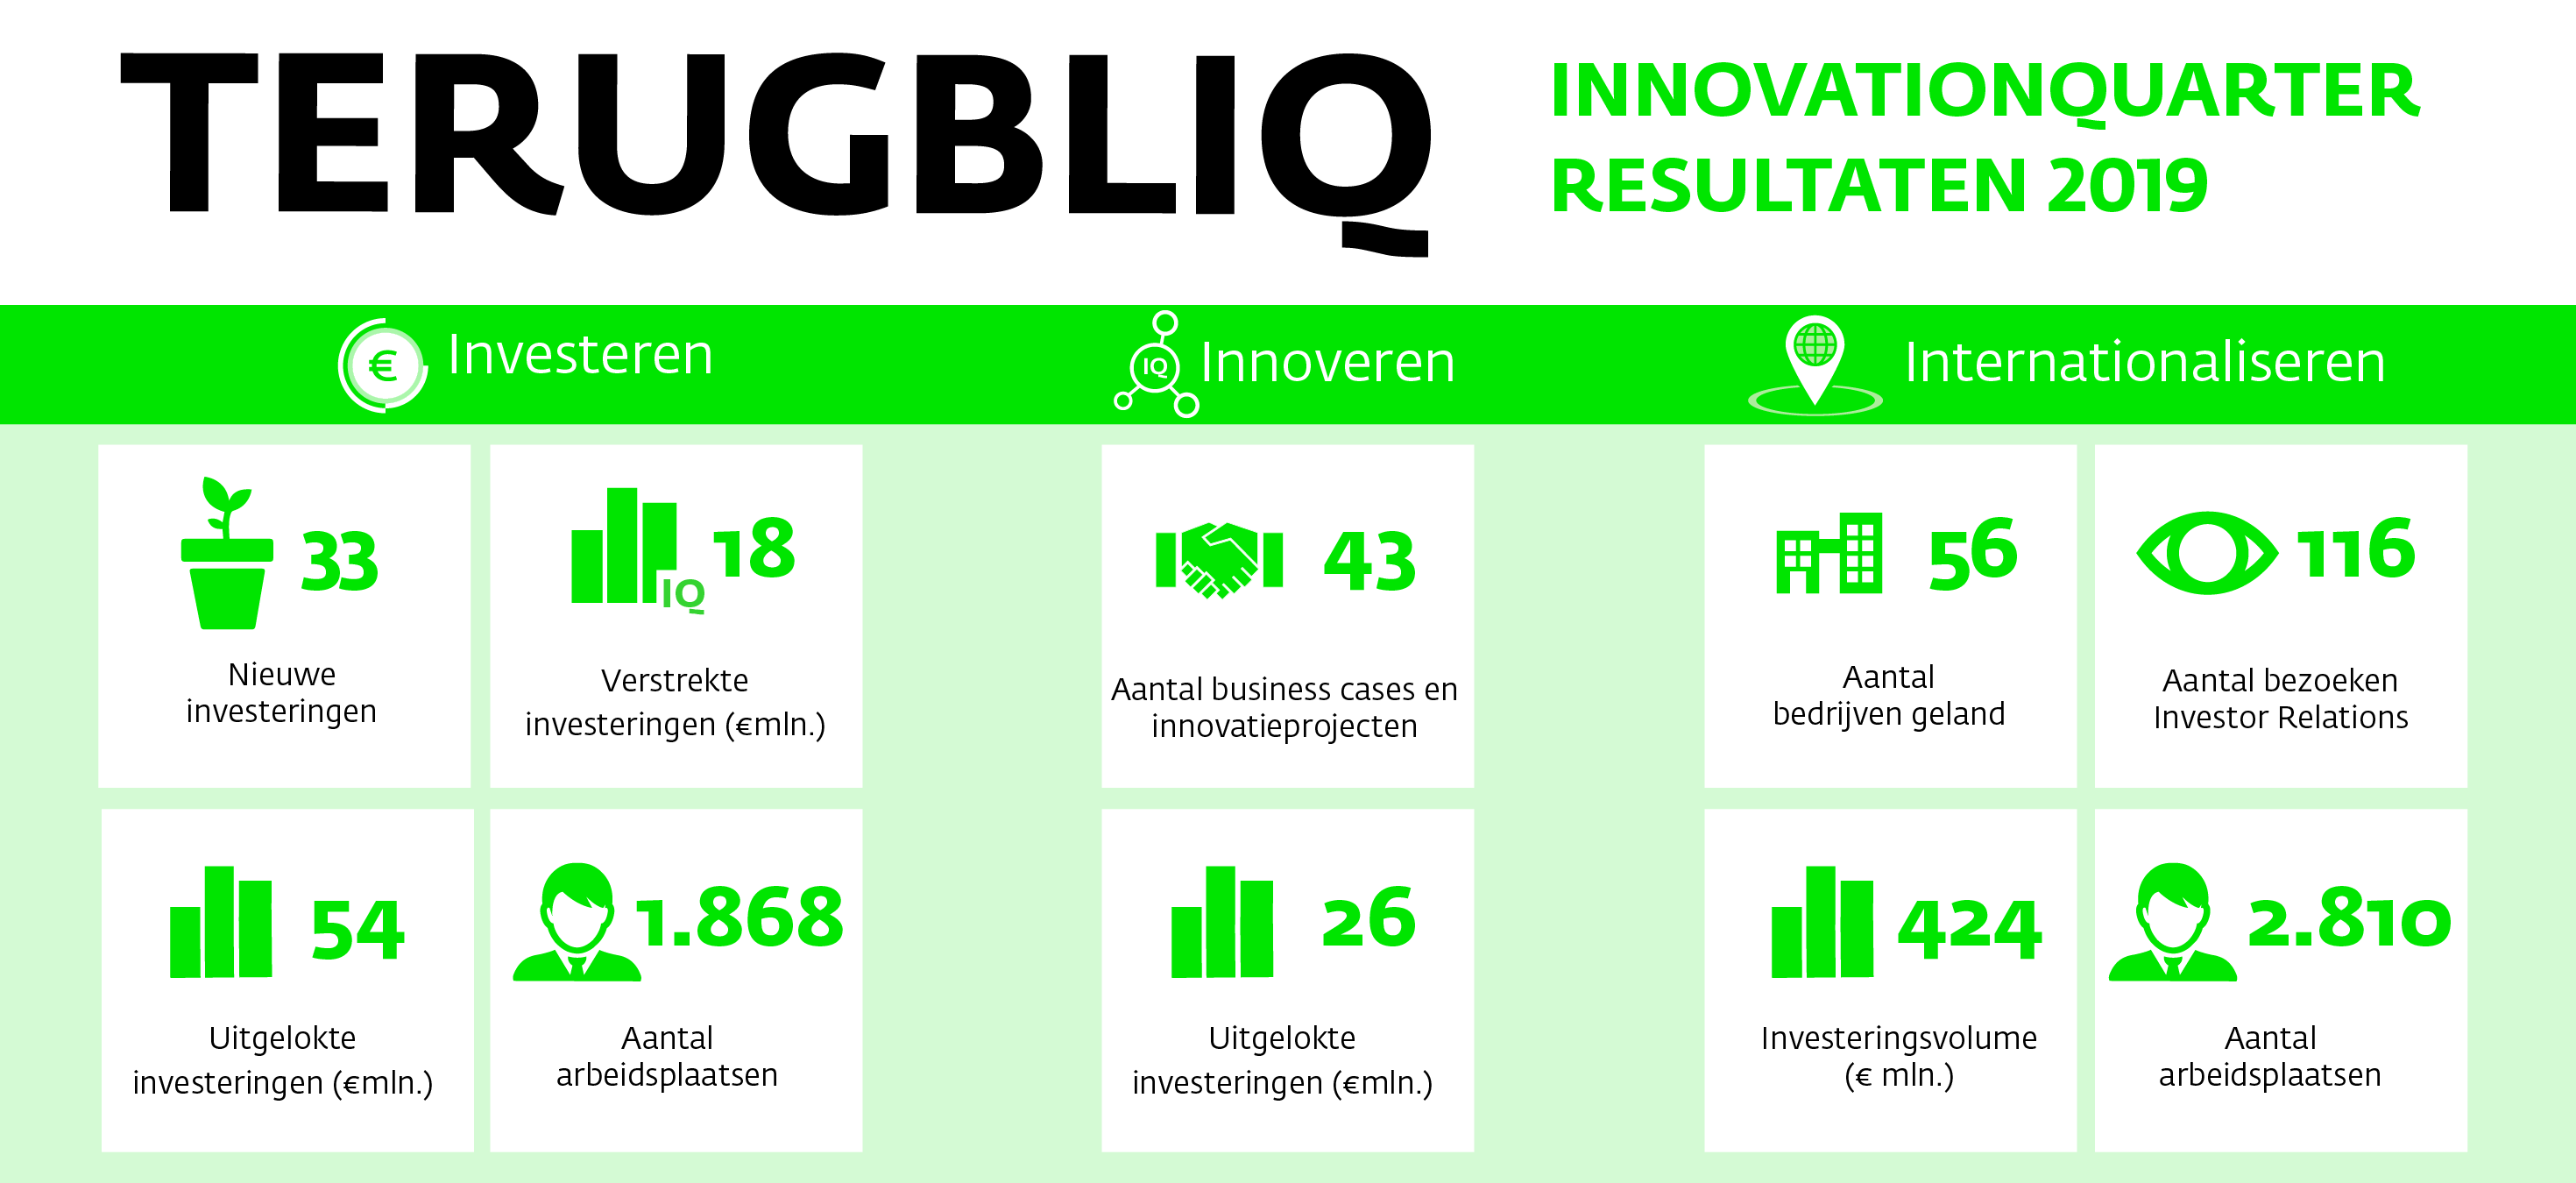 InnovationQuarter resultaten 2019